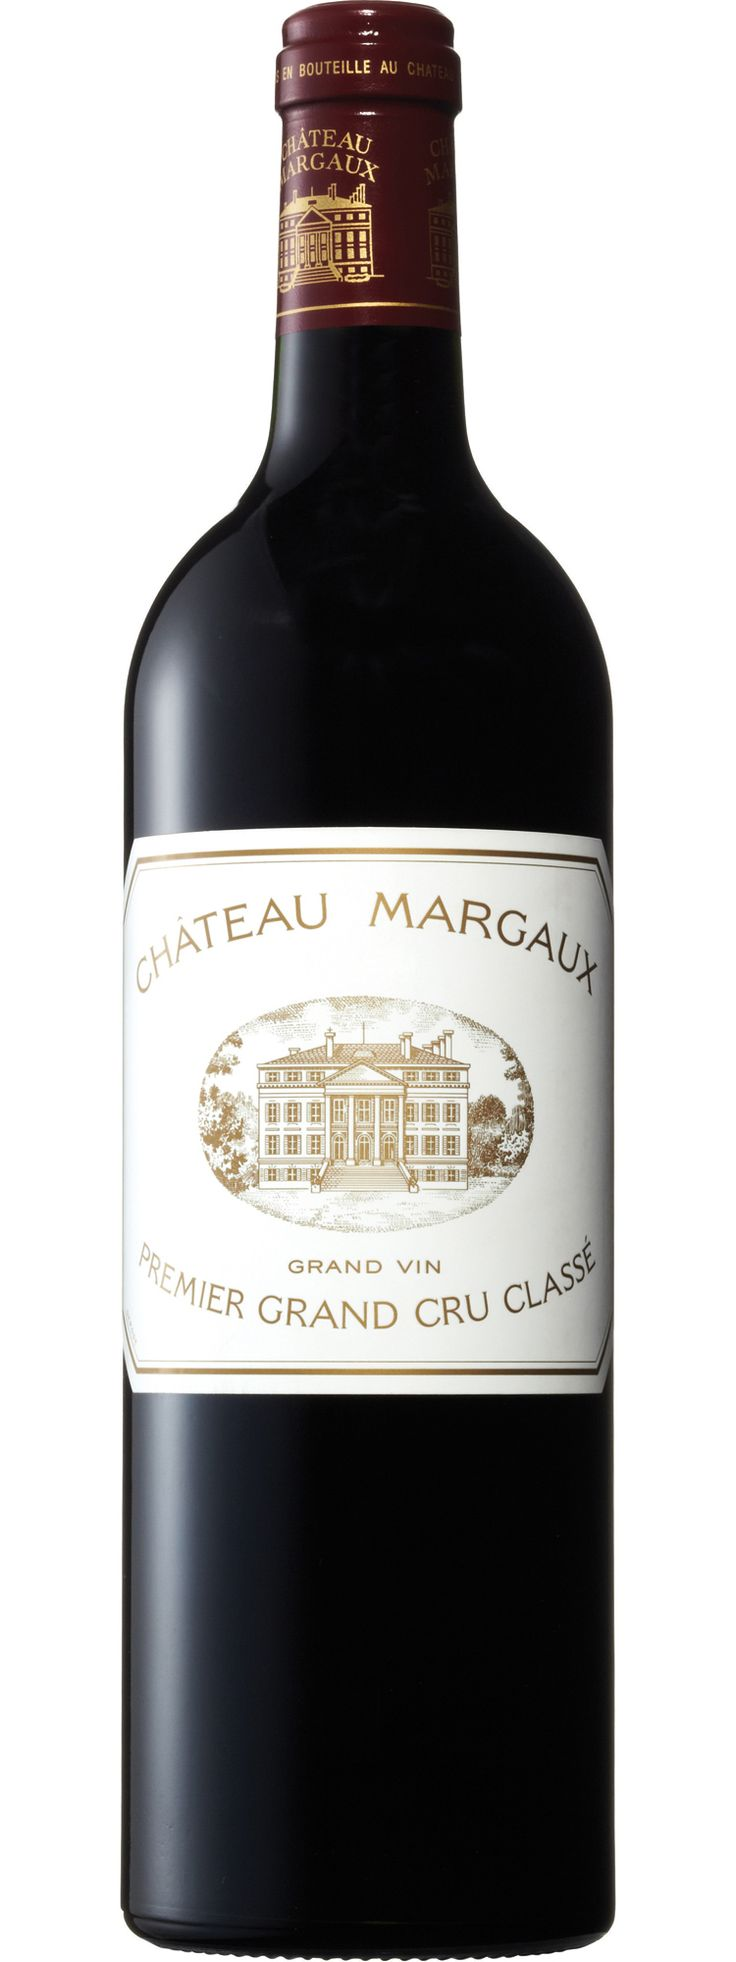 ch teau margaux 2009 pinterest products On chateau margaux